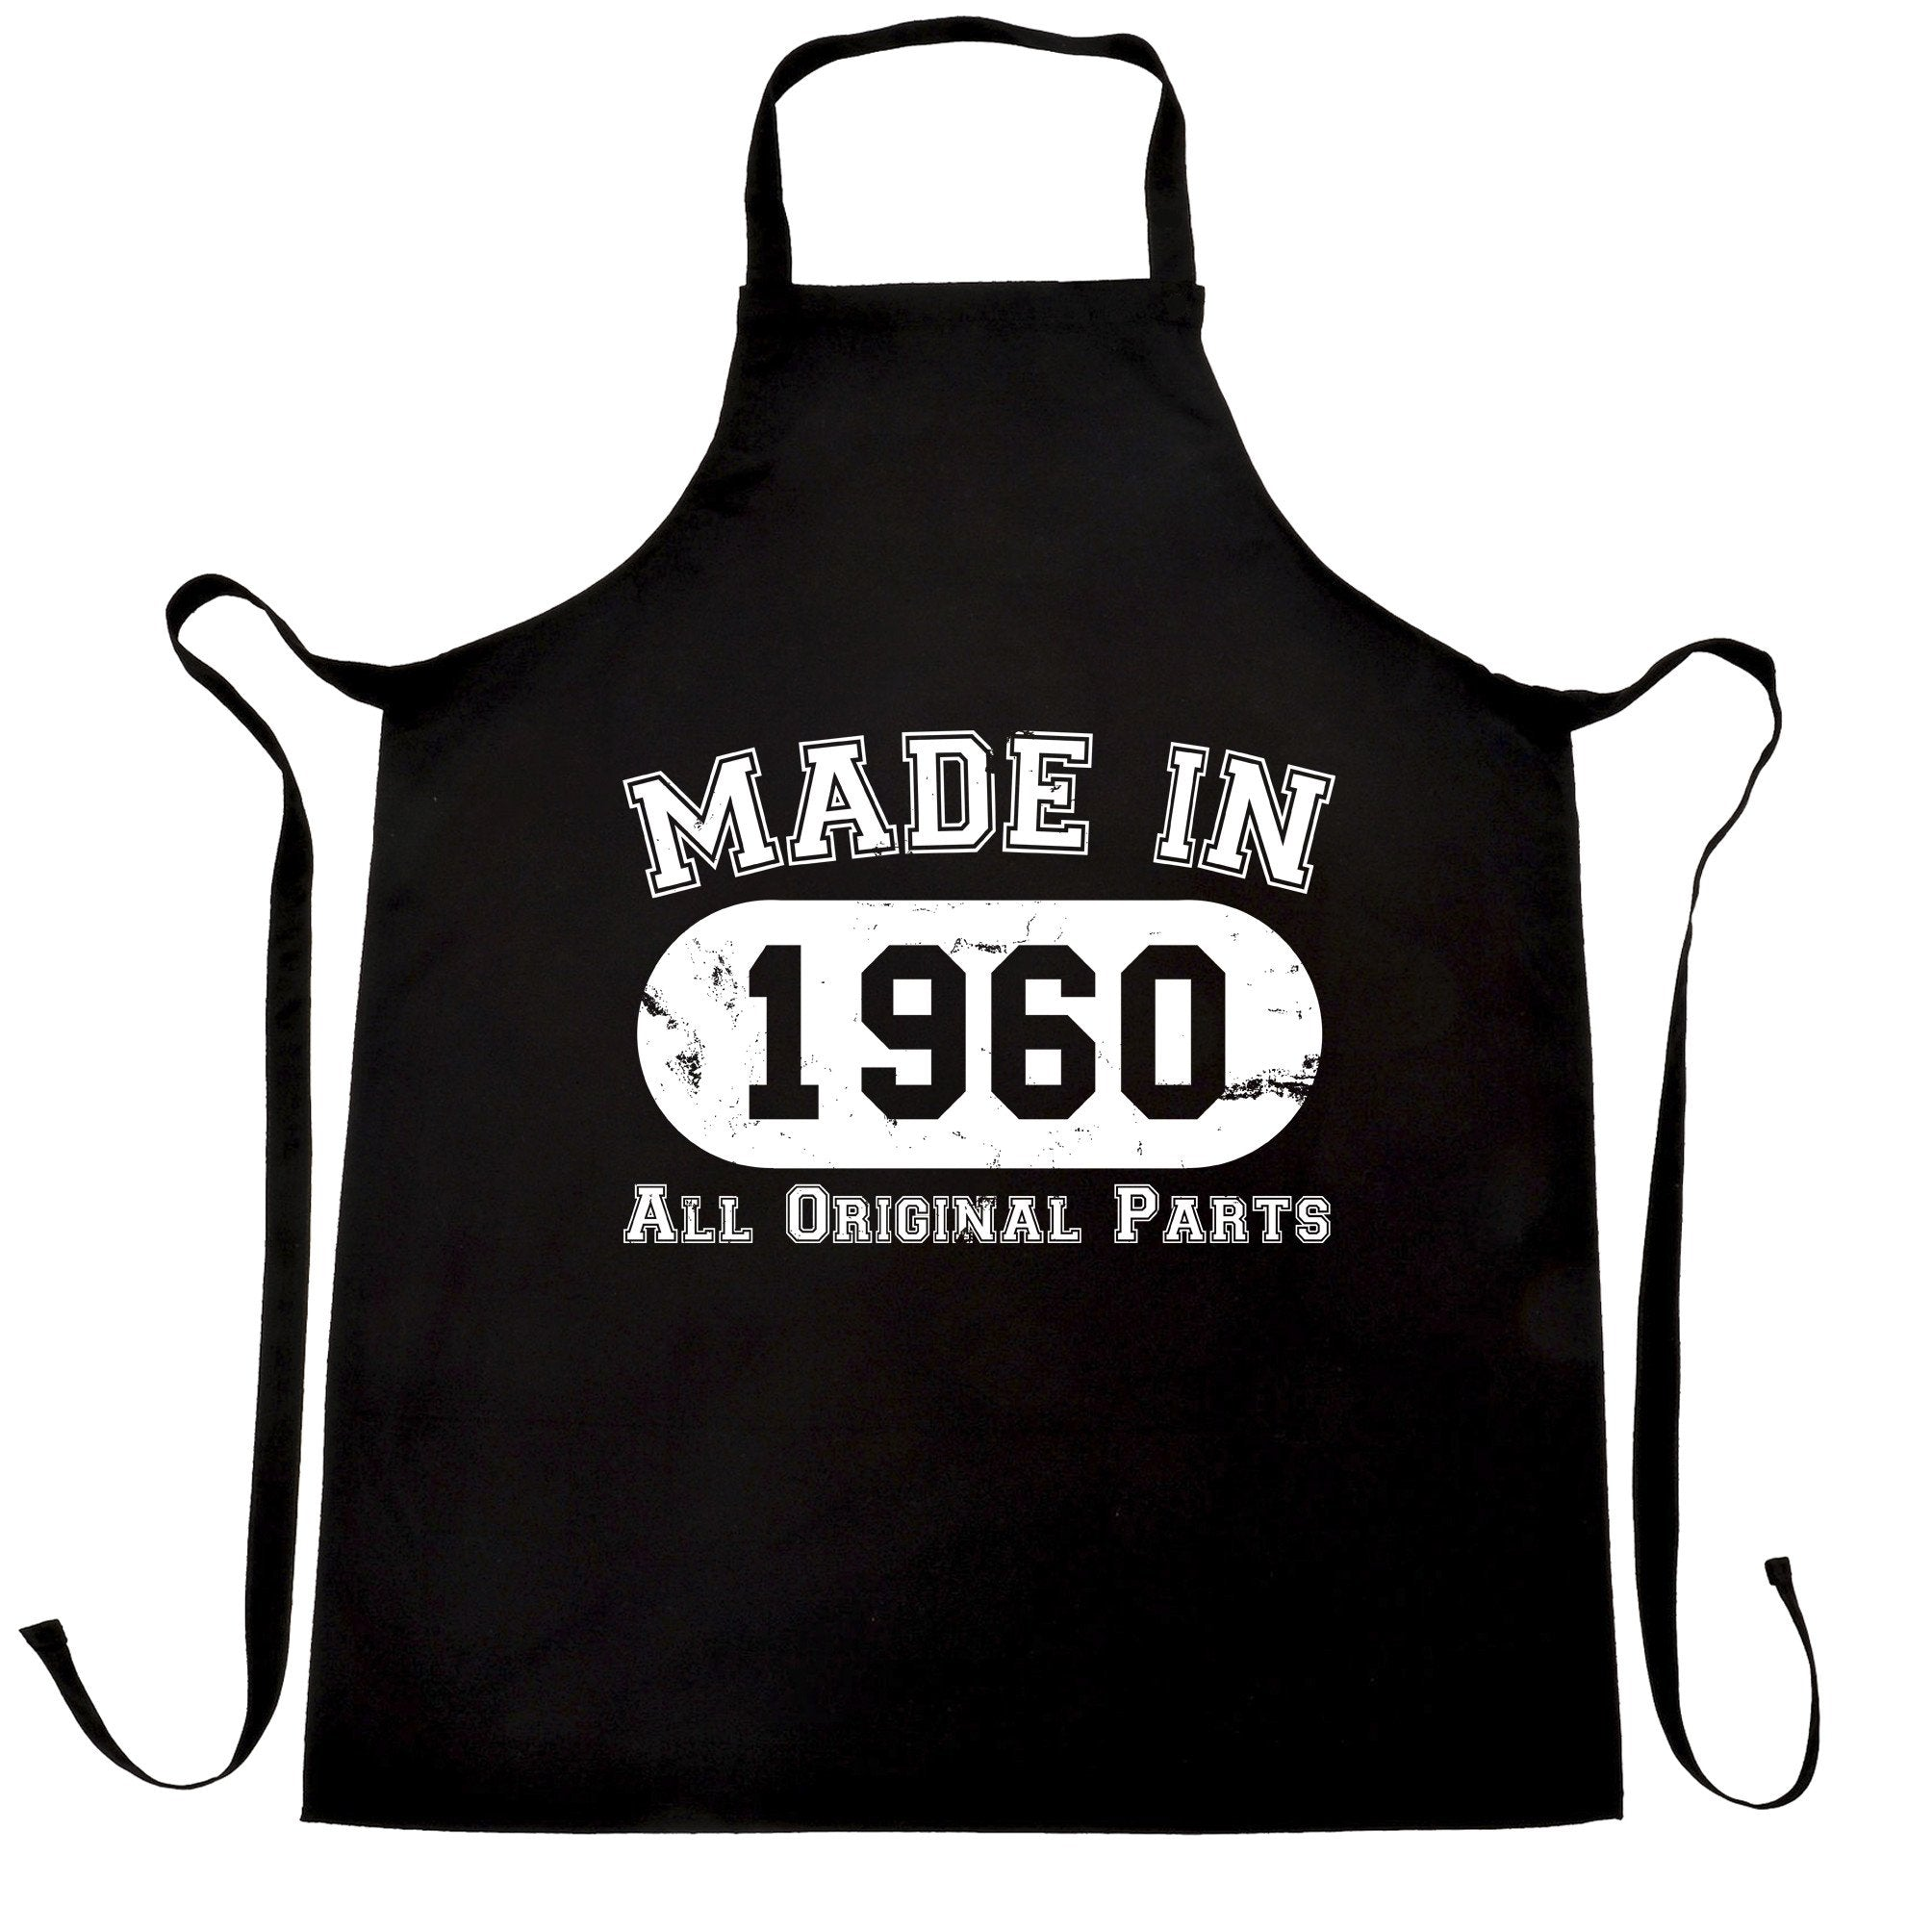 Made in 1960 All Original Parts Apron [Distressed]